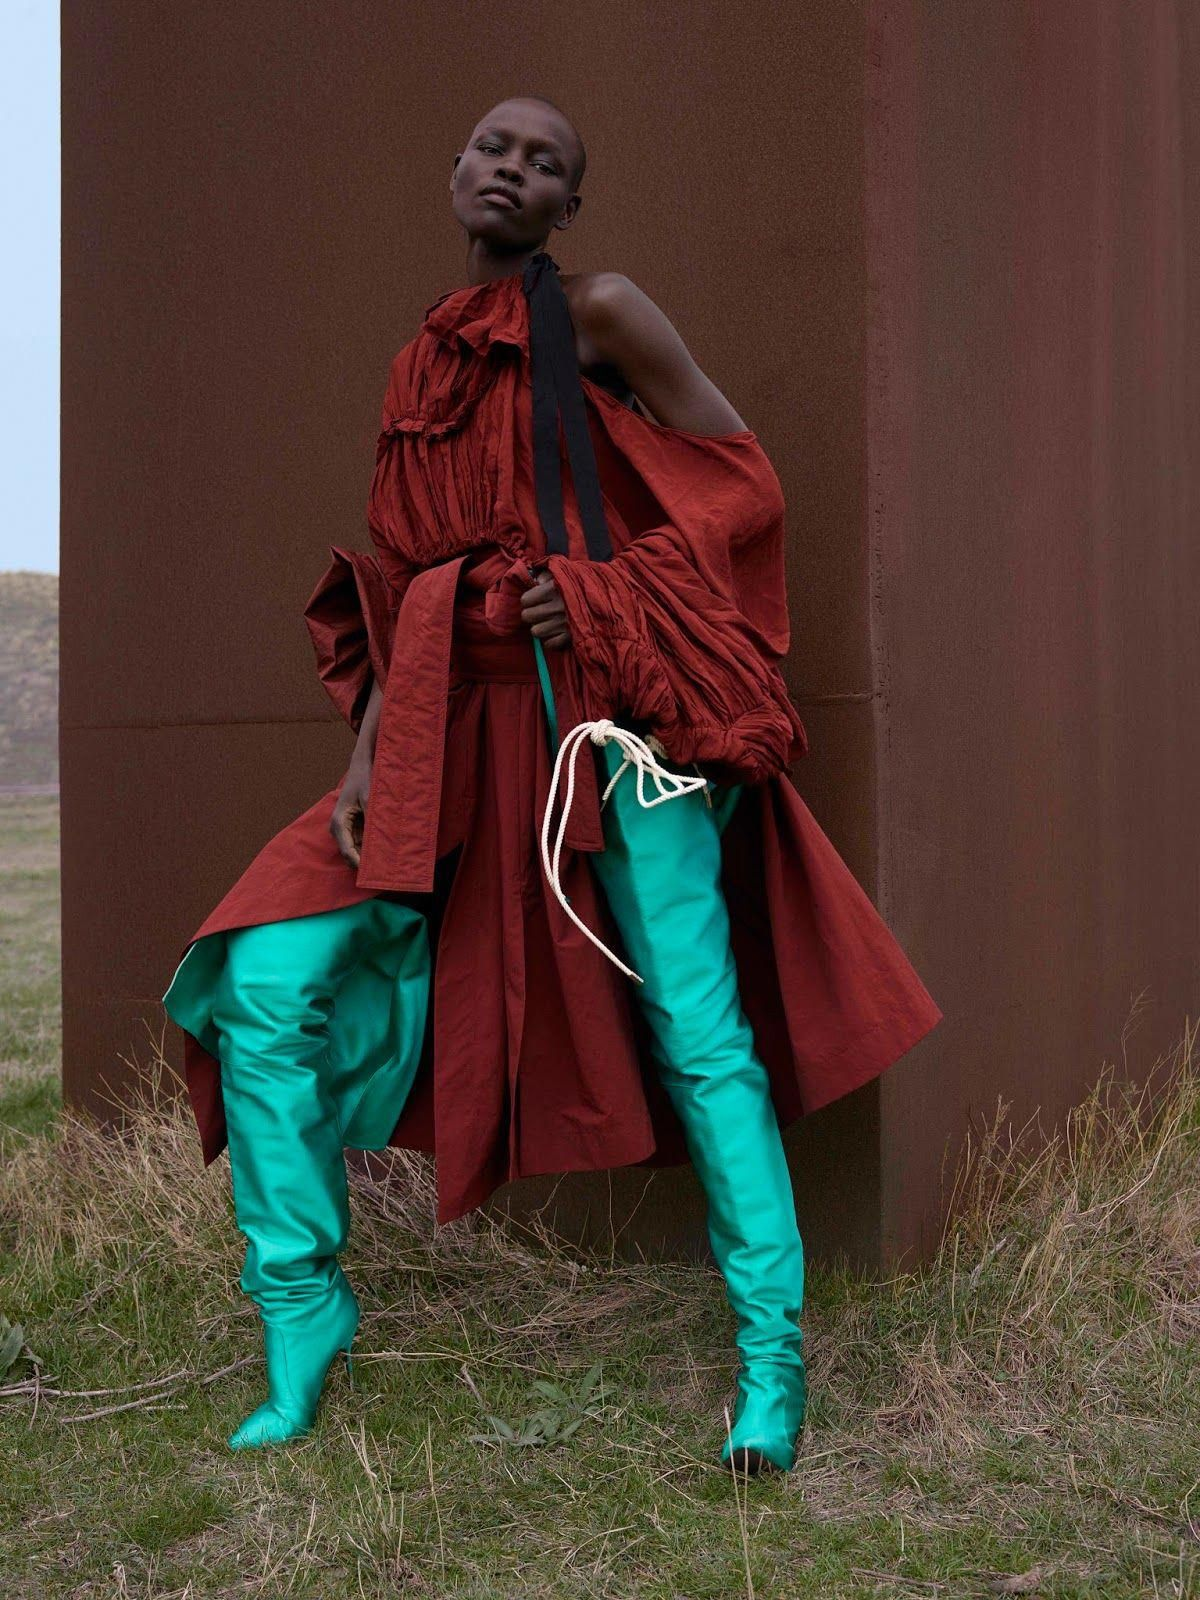 Alek Wek & Grace Bol in Dazed & Confused Spring/Summer 2017 by Viviane Sassen #editorialfashion